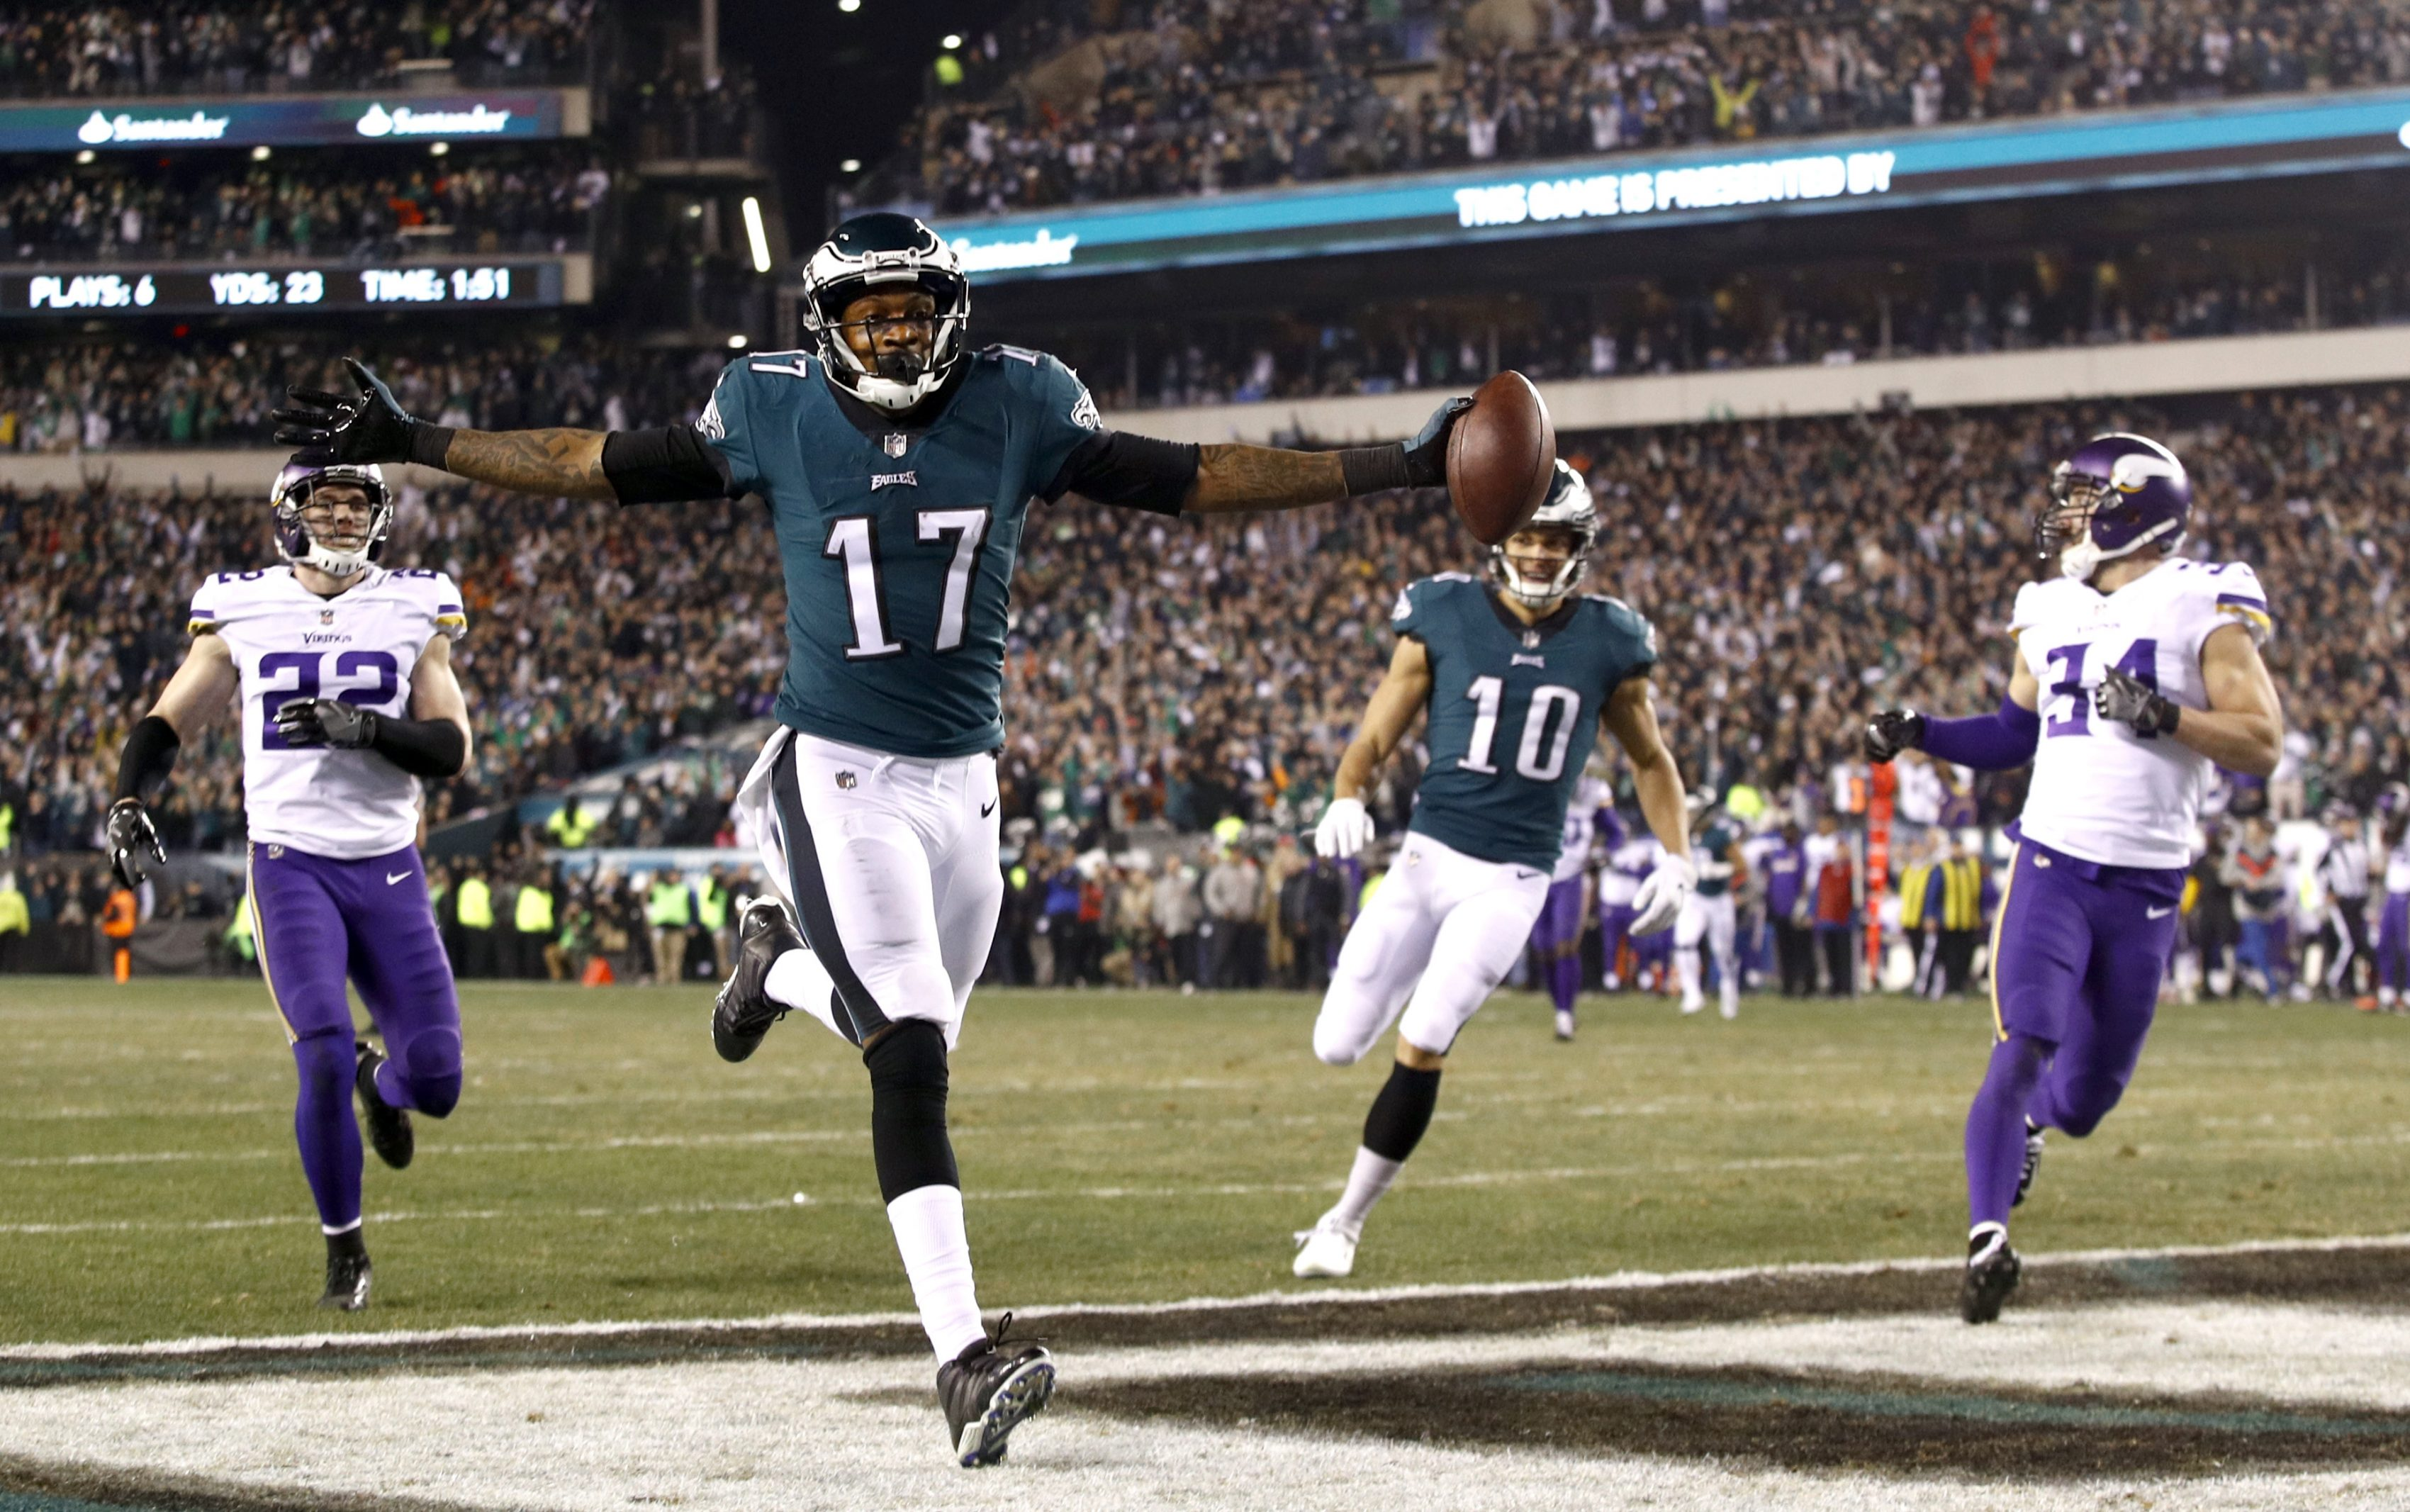 6d3c381c Delaware could lose $350k if the Eagles win the Super Bowl - WHYY